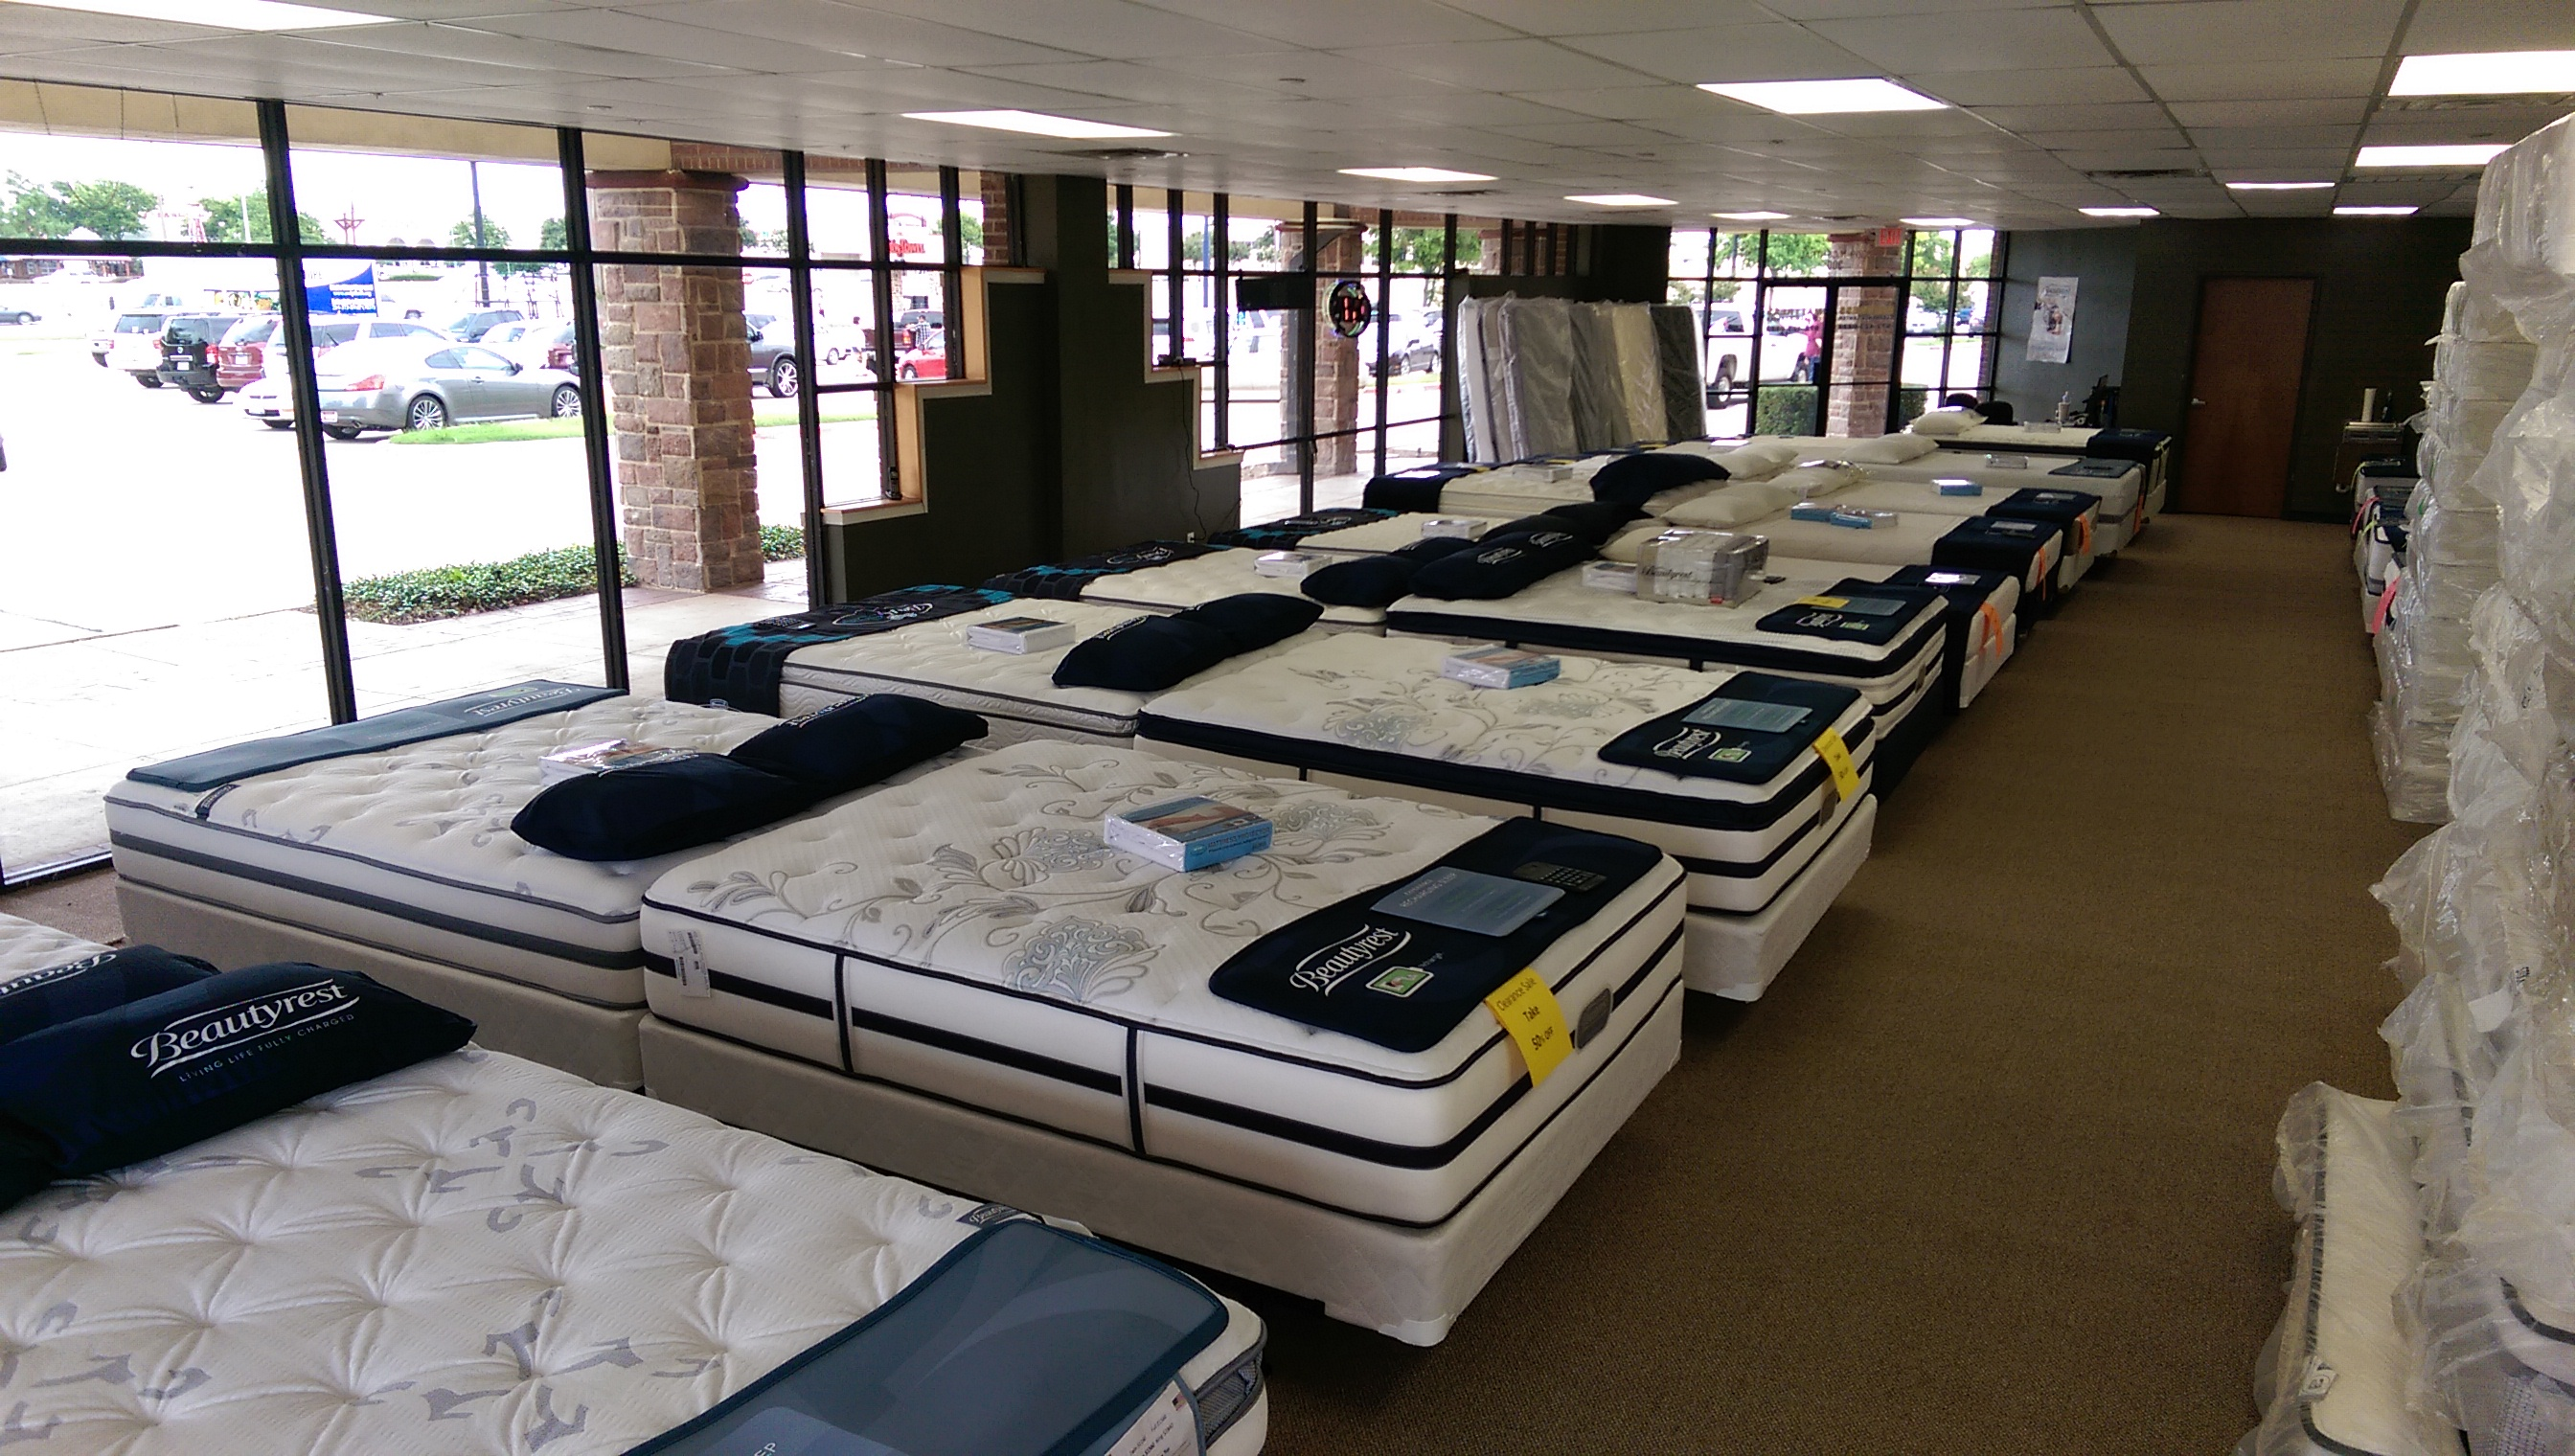 Mattress Clearance center image 3